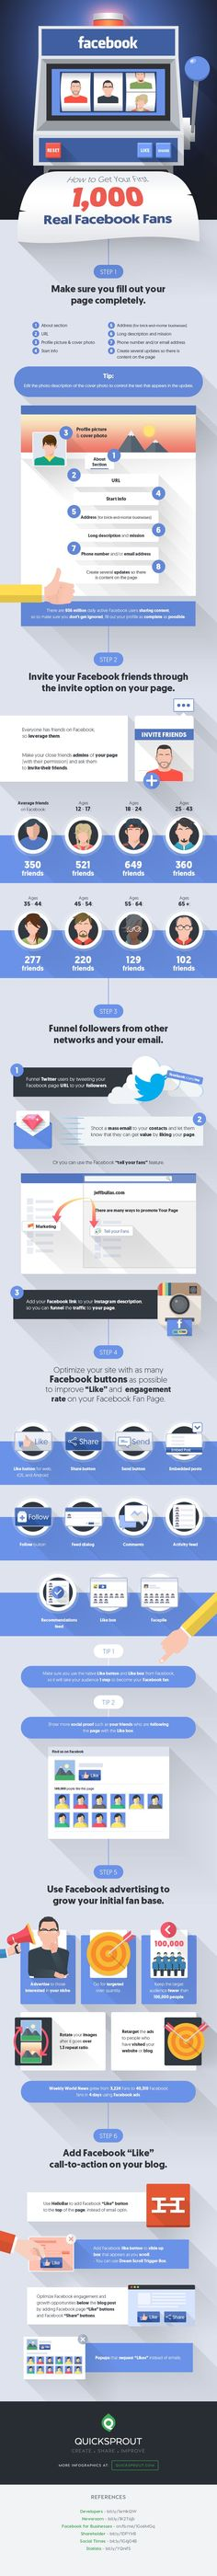 #SocialMedia Marketing: How to Get Your First 1,000 Real Facebook Fans - #infographic